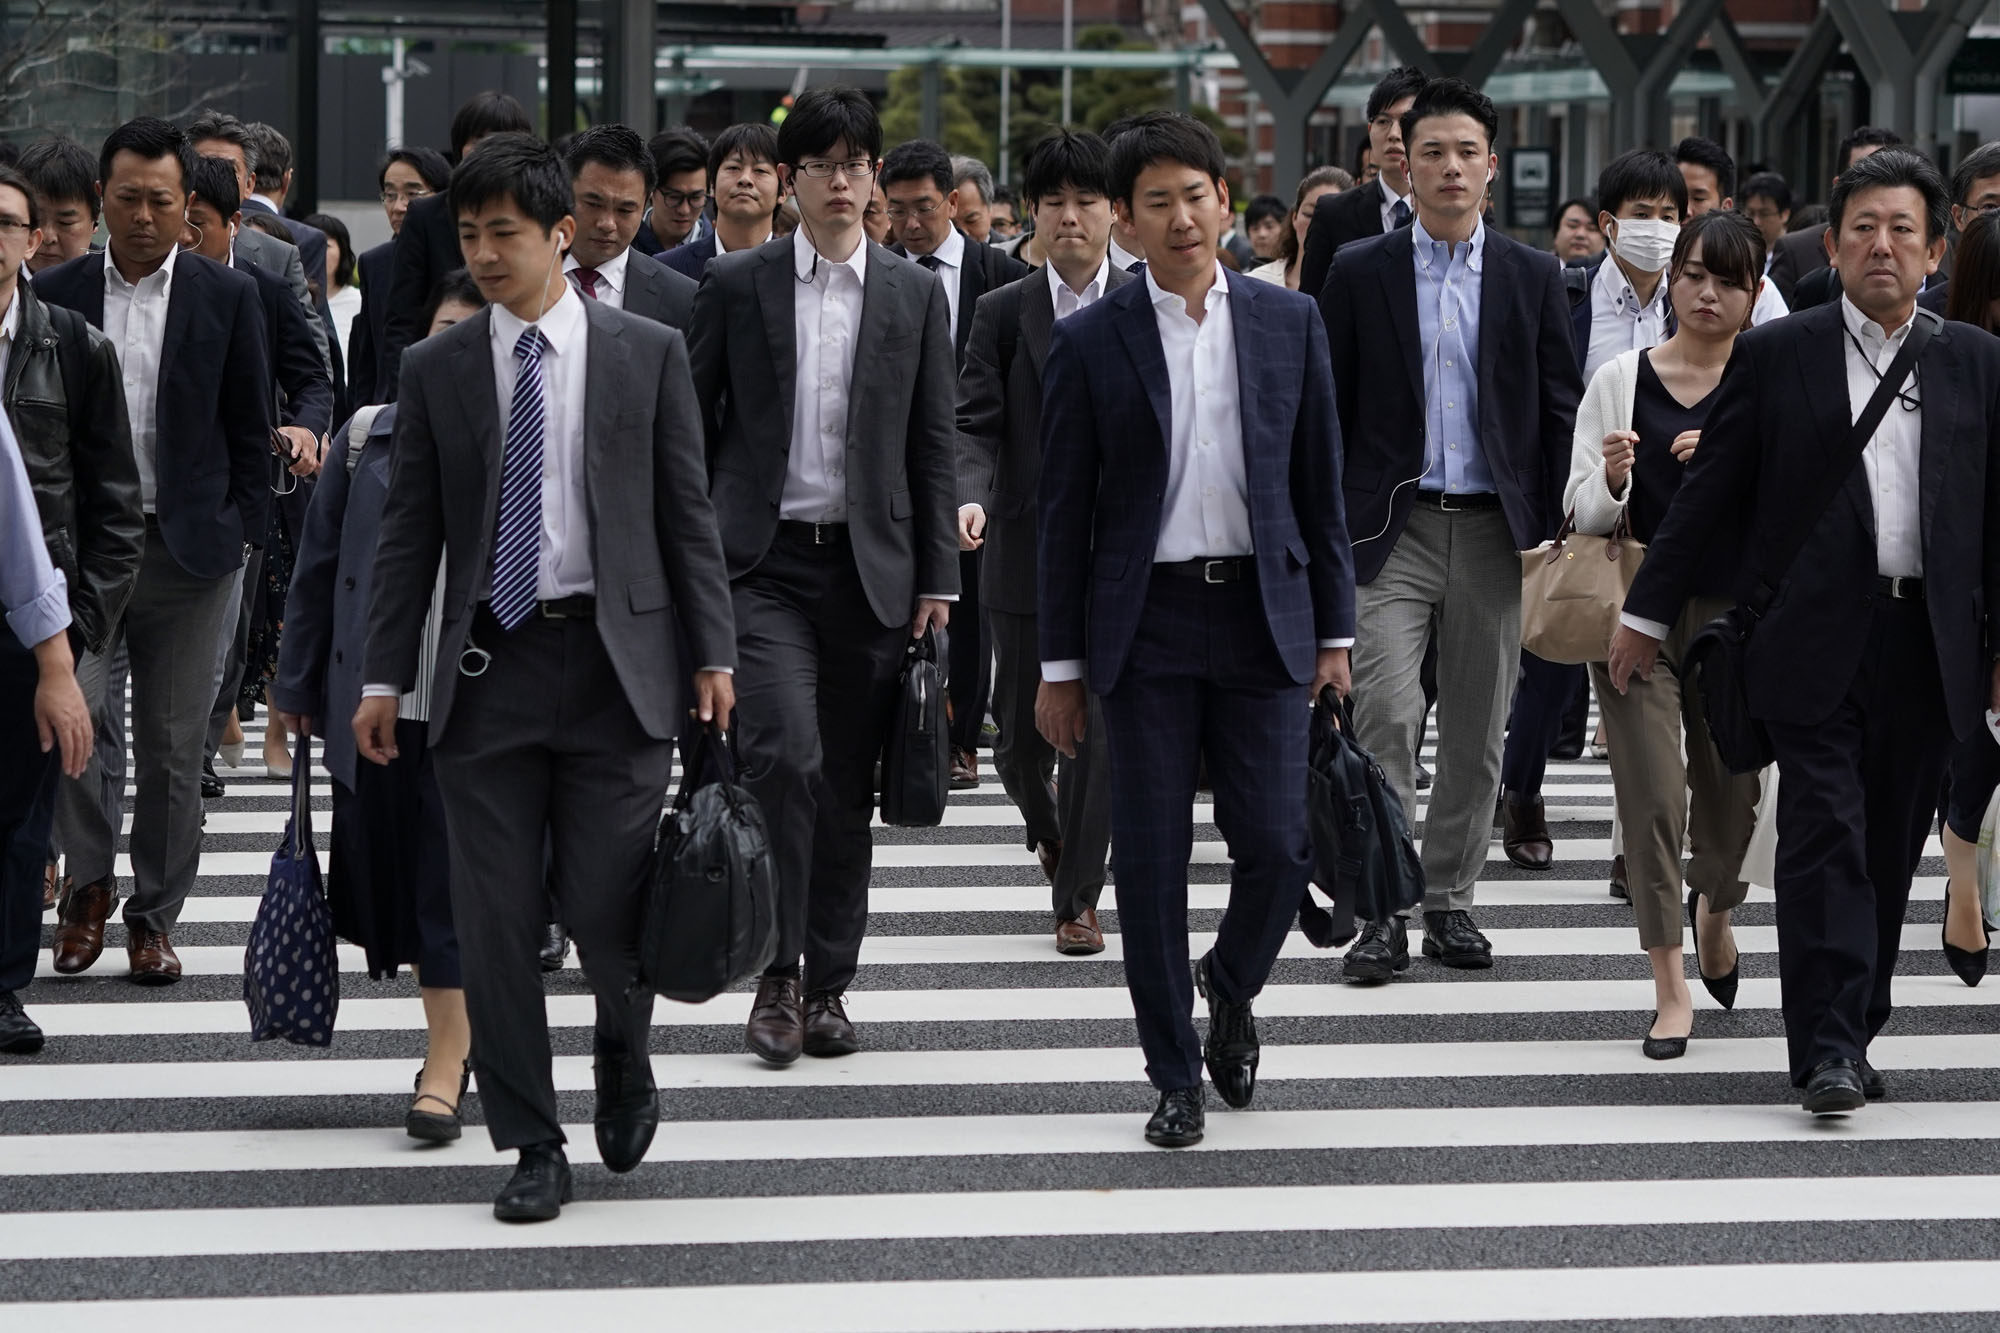 OECD data suggests that as a percentage of corporate value-added, Japanese firms pays the lowest share to employee compensation in the OECD: 32 percent for large listed corporations and 40 percent for small and medium-size ones. In Germany, the figures are 78 and 71 percent, respectively. | BLOOMBERG